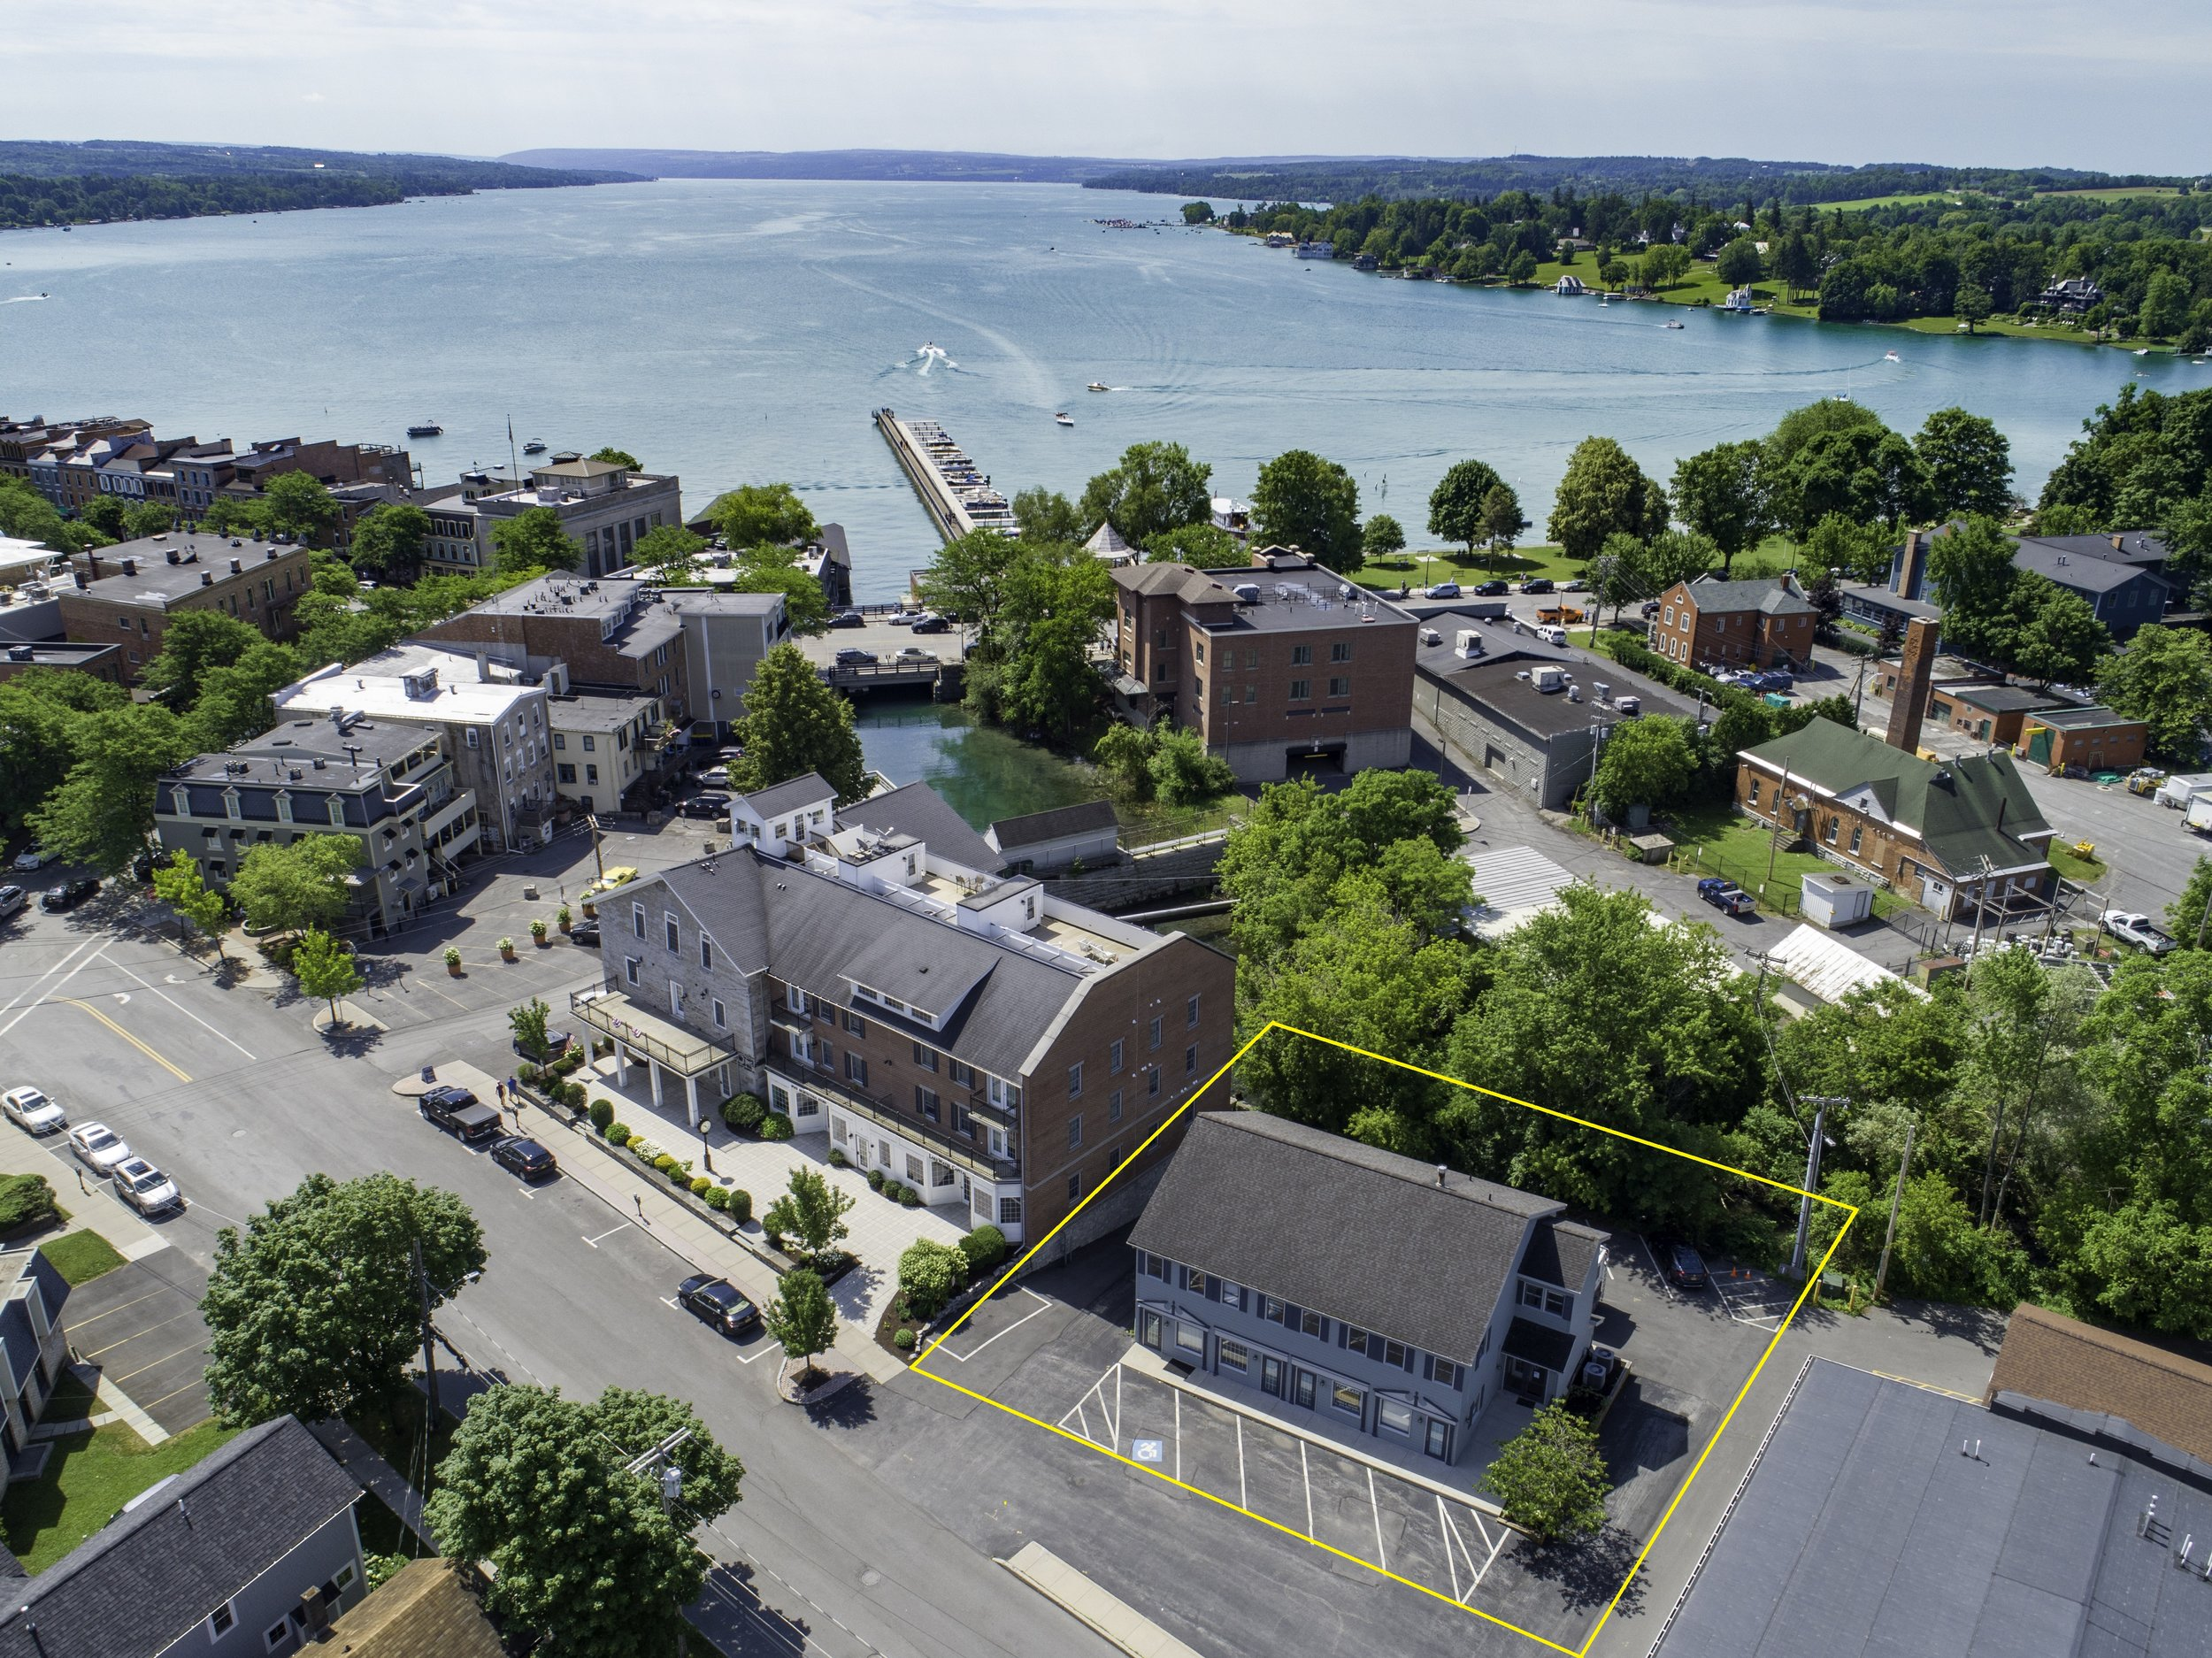 RARE OPPORTUNITY TO PURCHASE A COMMERCIAL BUILDING IN THE BEAUTIFUL AND HIGHLY DESIRED DOWNTOWN DISTRICT OF SKANEATELES. PROPERTY HAS NOT BEEN RELEASED TO THE OPEN MARKET FOR YEARS!